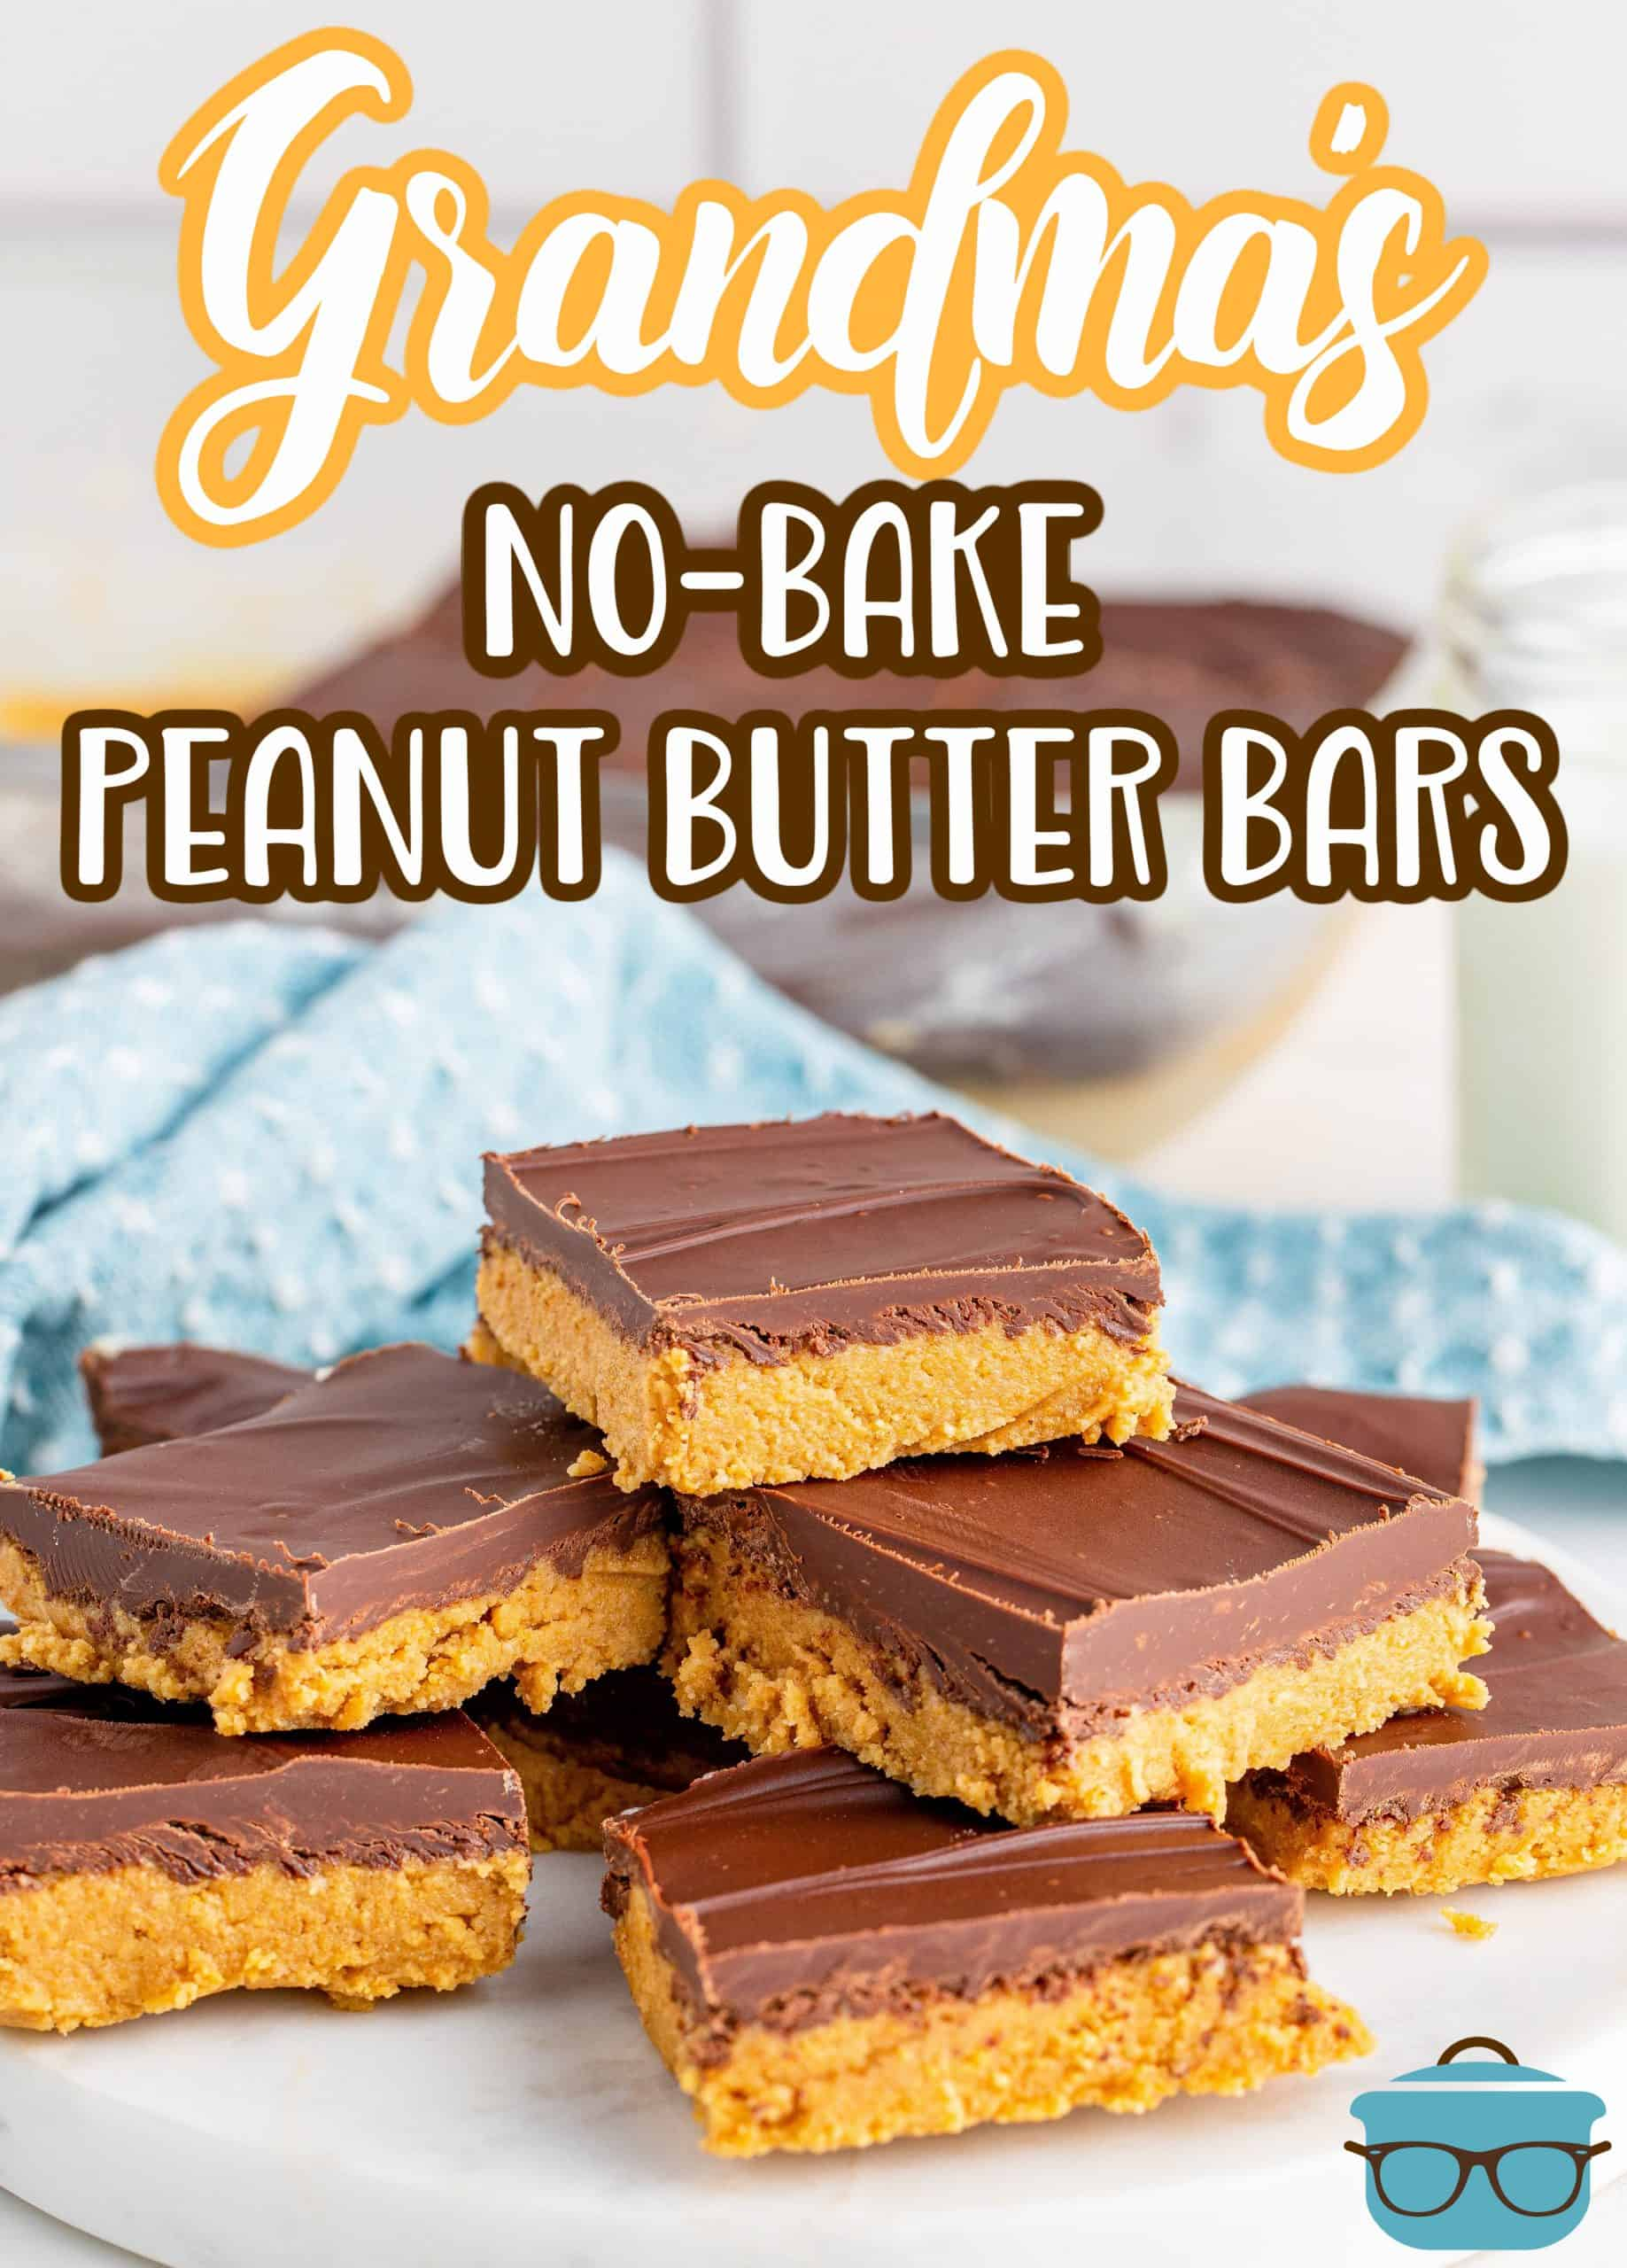 With only five ingredients, Grandma's Peanut Butter Bars are a classic recipe that are nostalgic and delicious. They taste like the bars that were served in school cafeterias back in the day.